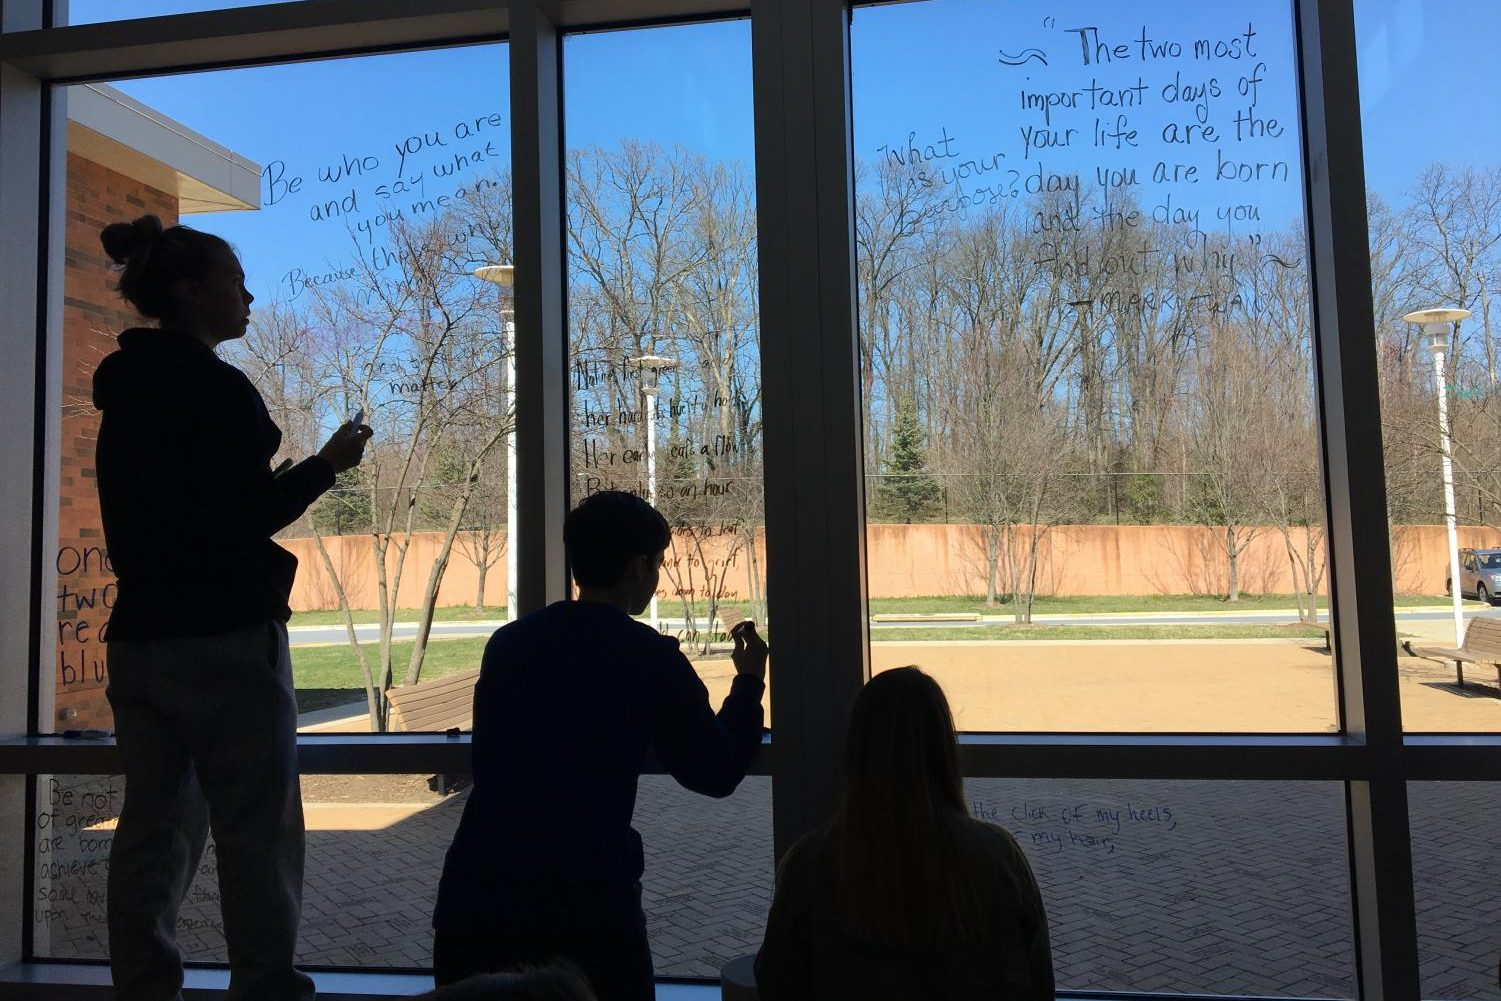 National English Honor Society members write poetry on the cafeteria windows.